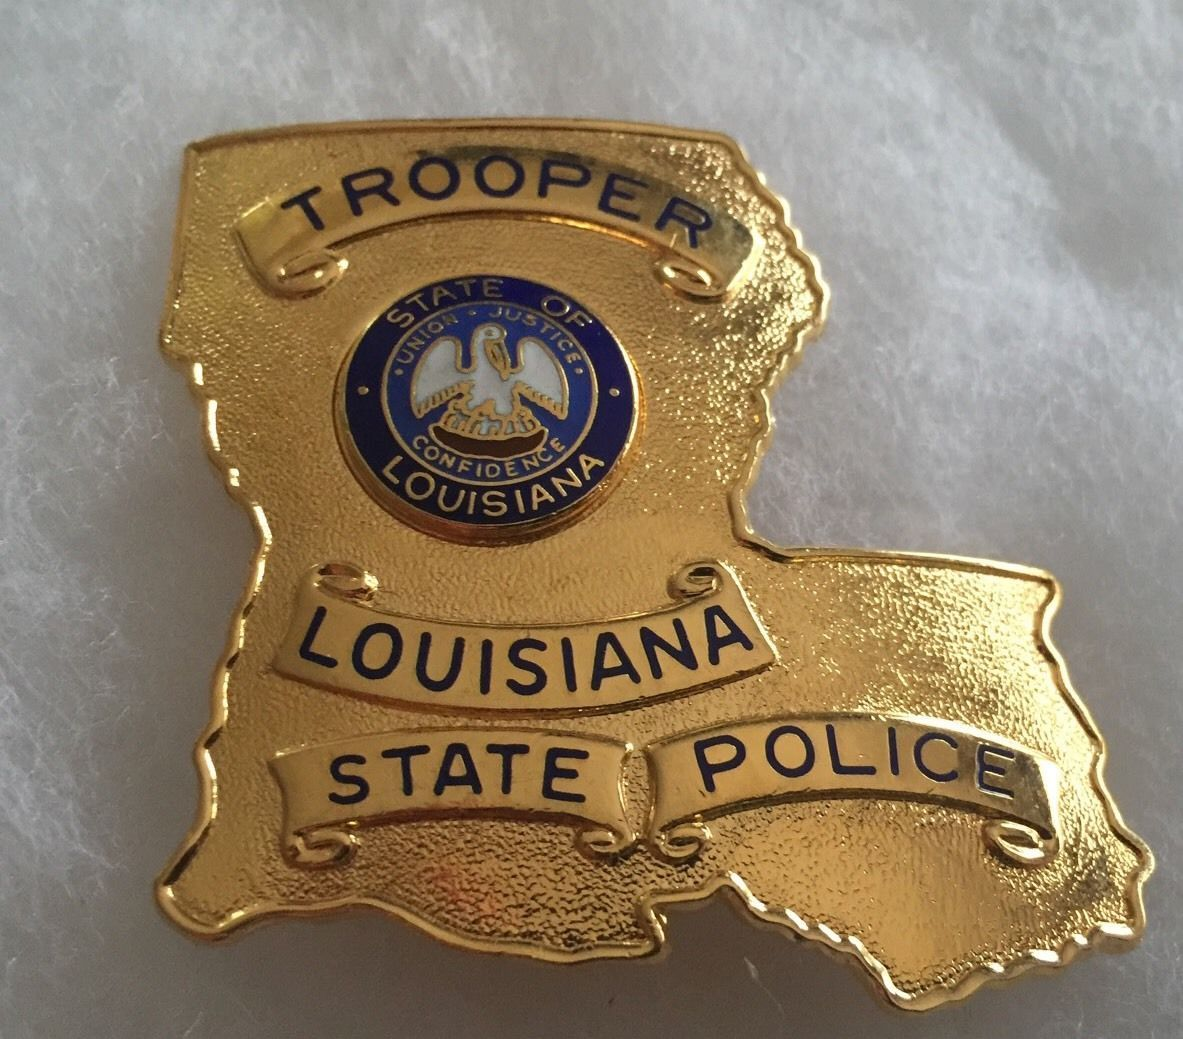 Louisiana State Trooper Blackinton This Represents That They R Charmed With 2031 Oxford For Dave I Think It Is Gold Fire Badge Police Badge State Trooper